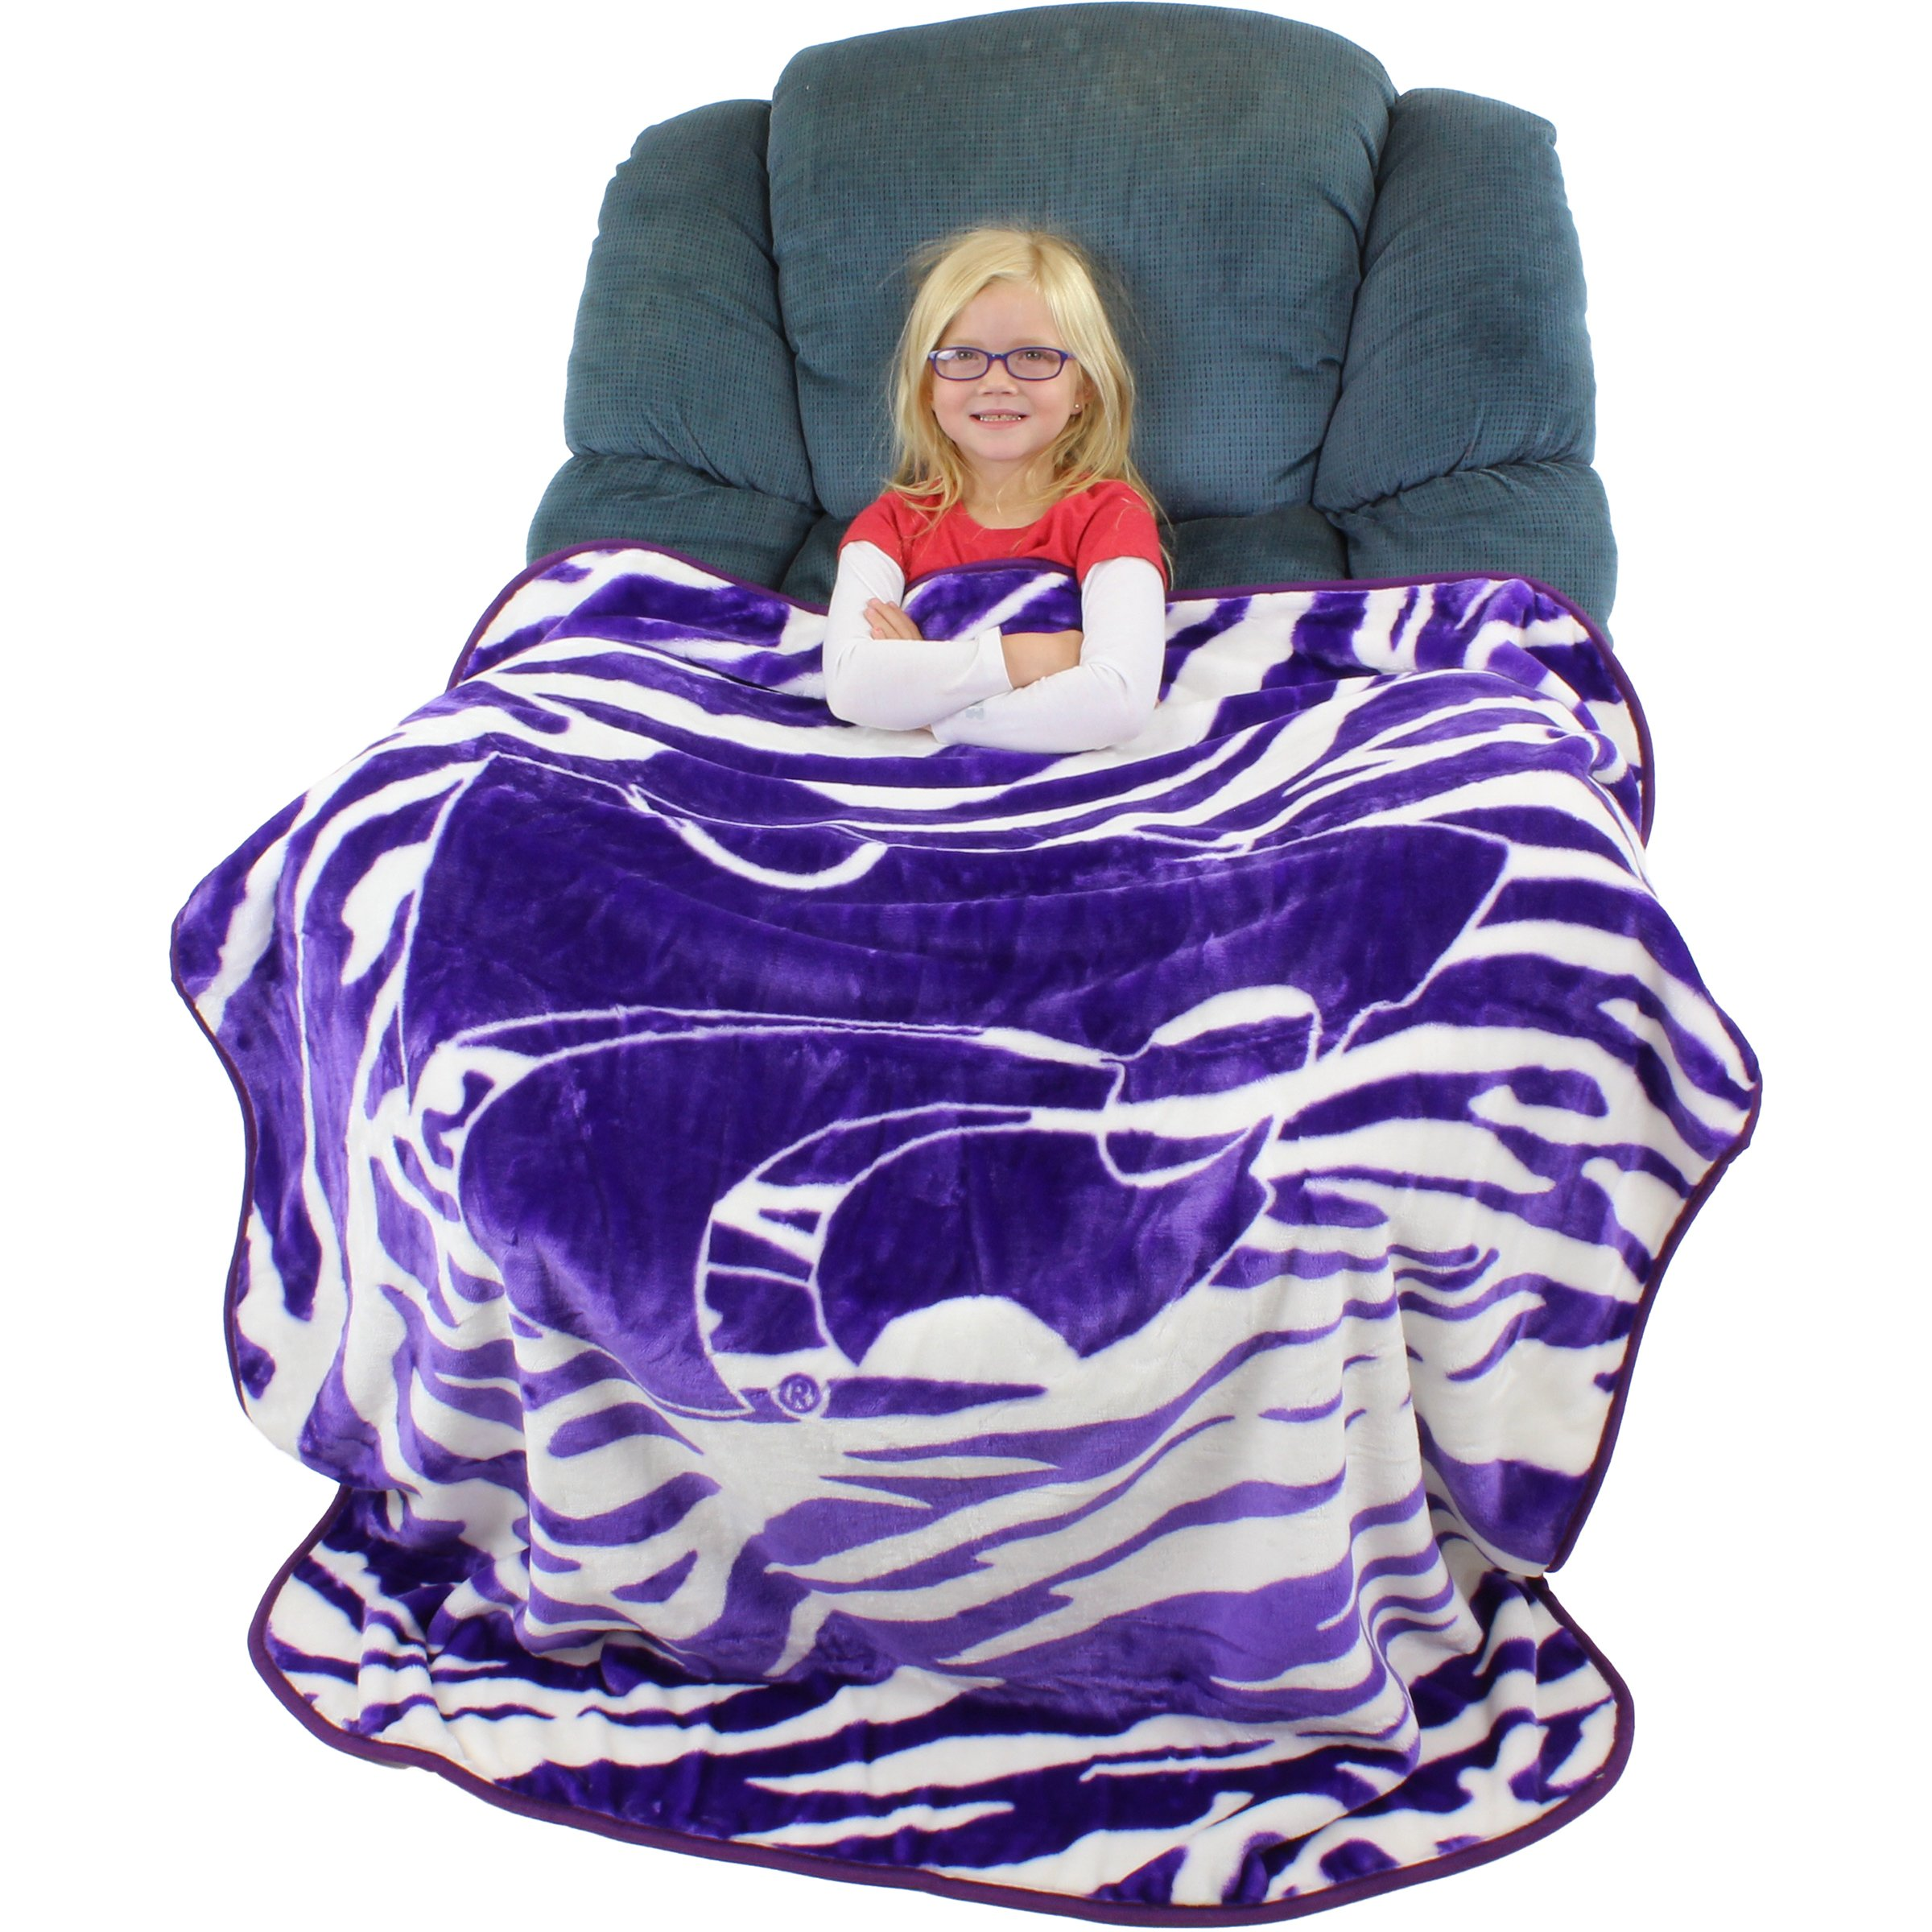 College Covers Raschel Throw Blanket, 50'' x 60'', Kansas State Wildcats by College Covers